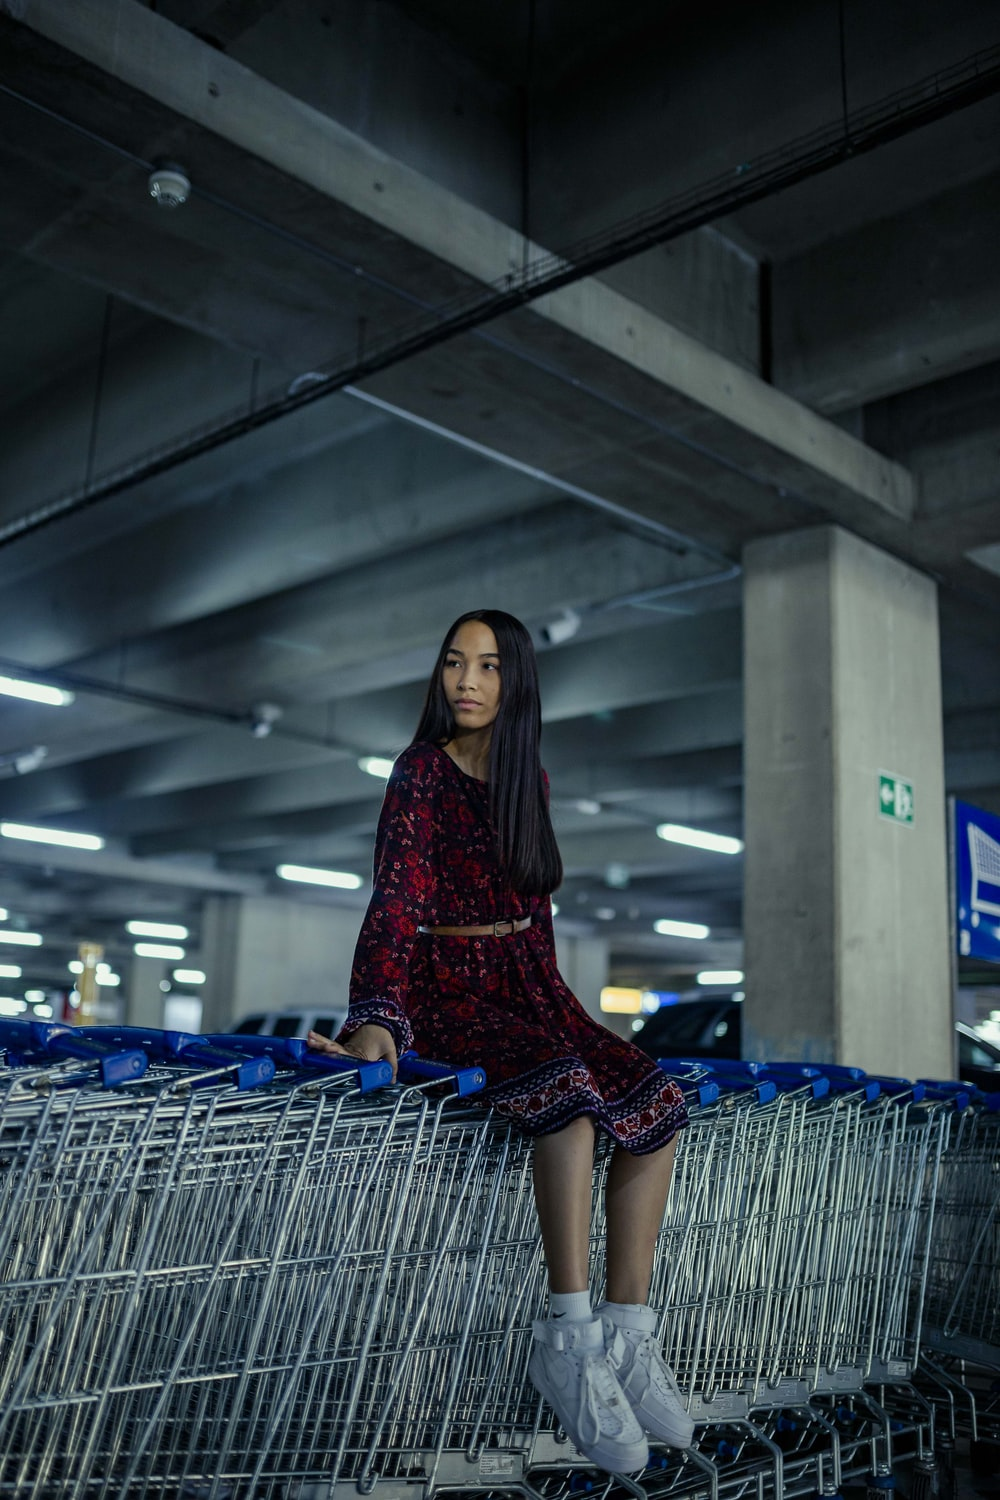 woman in red and black dress sitting on blue shopping cart